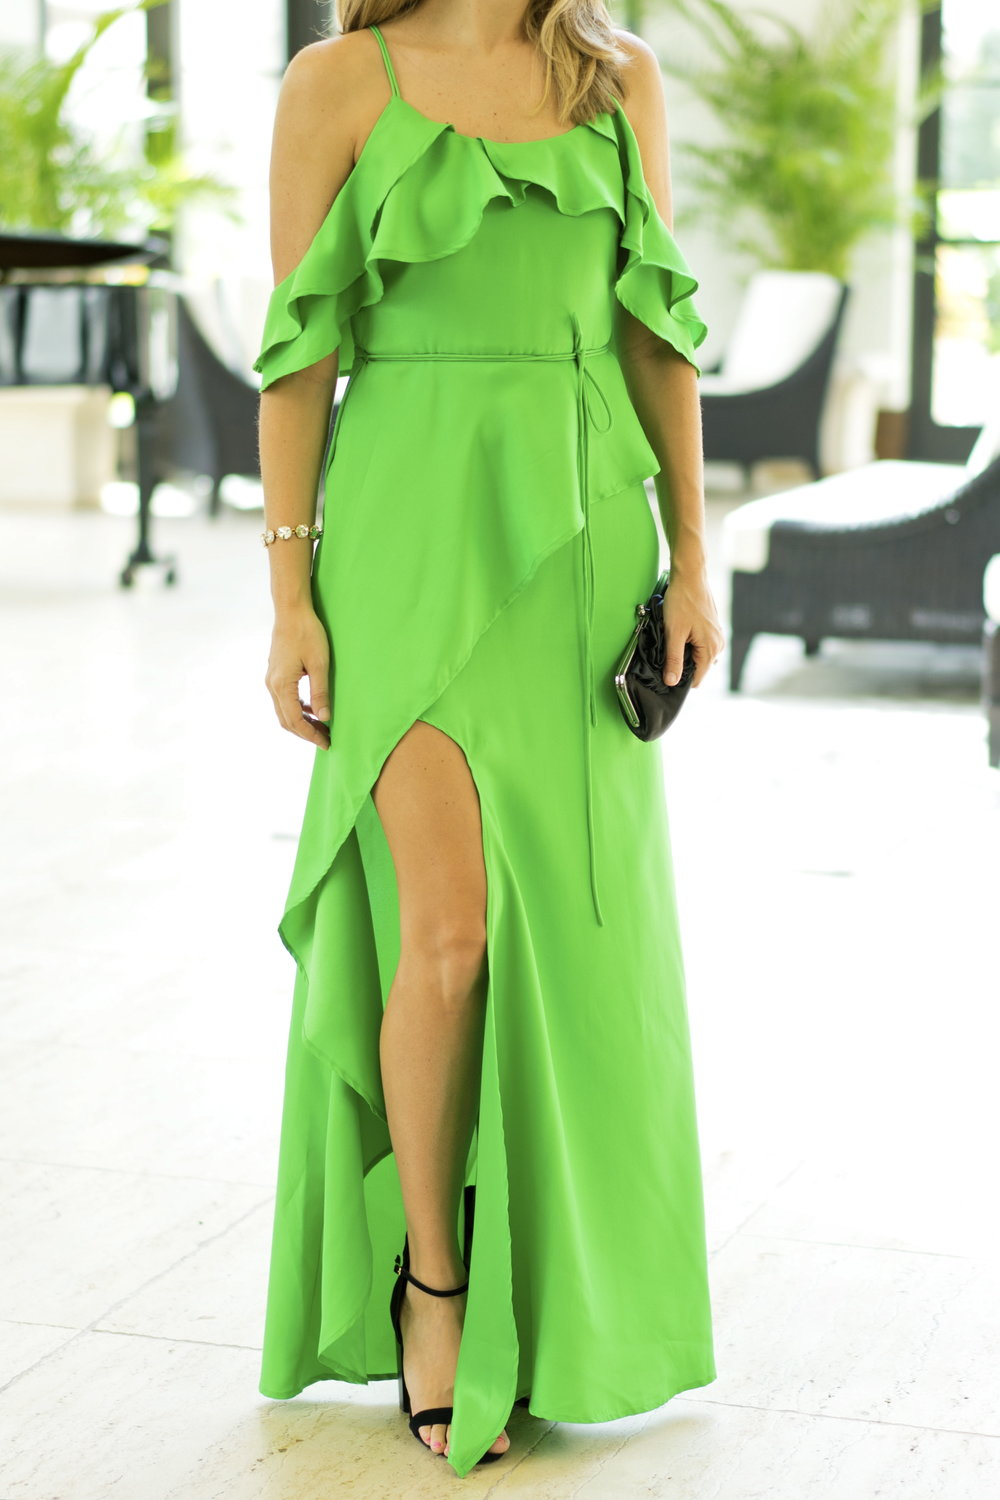 Emerald green ruffle maxi